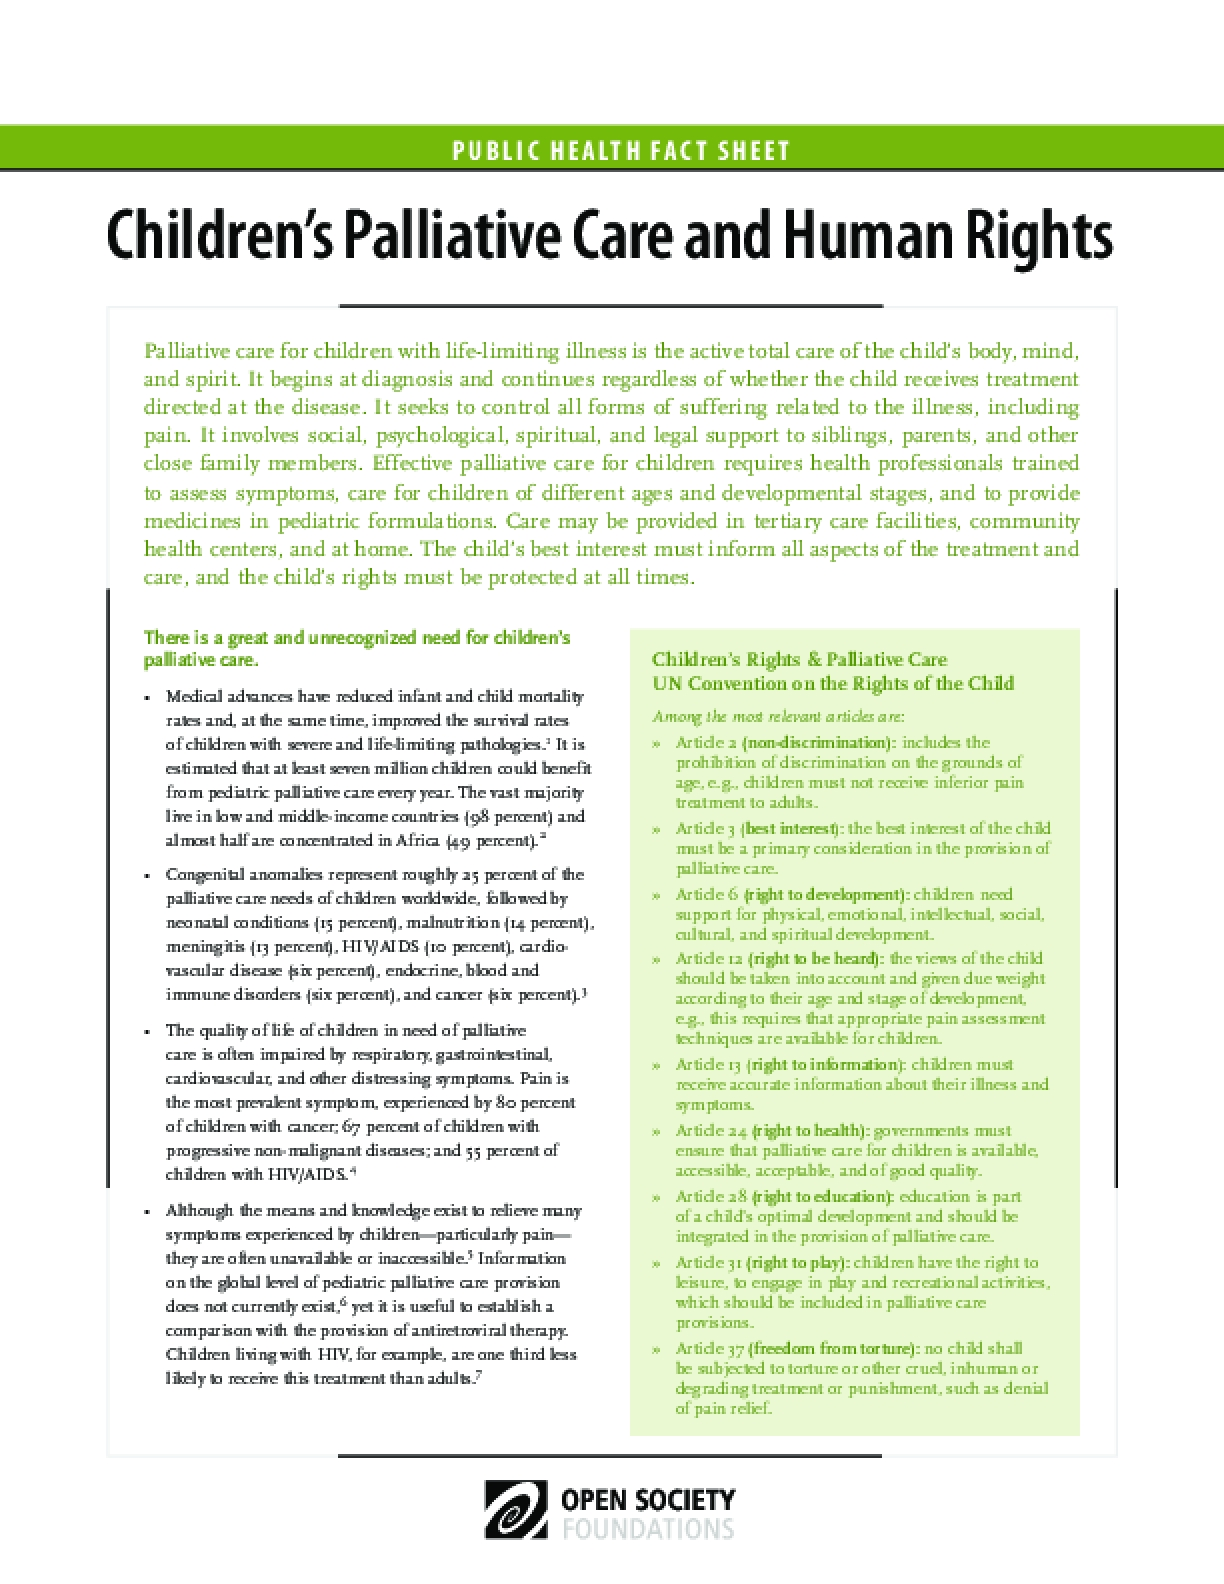 Children's Palliative Care and Human Rights